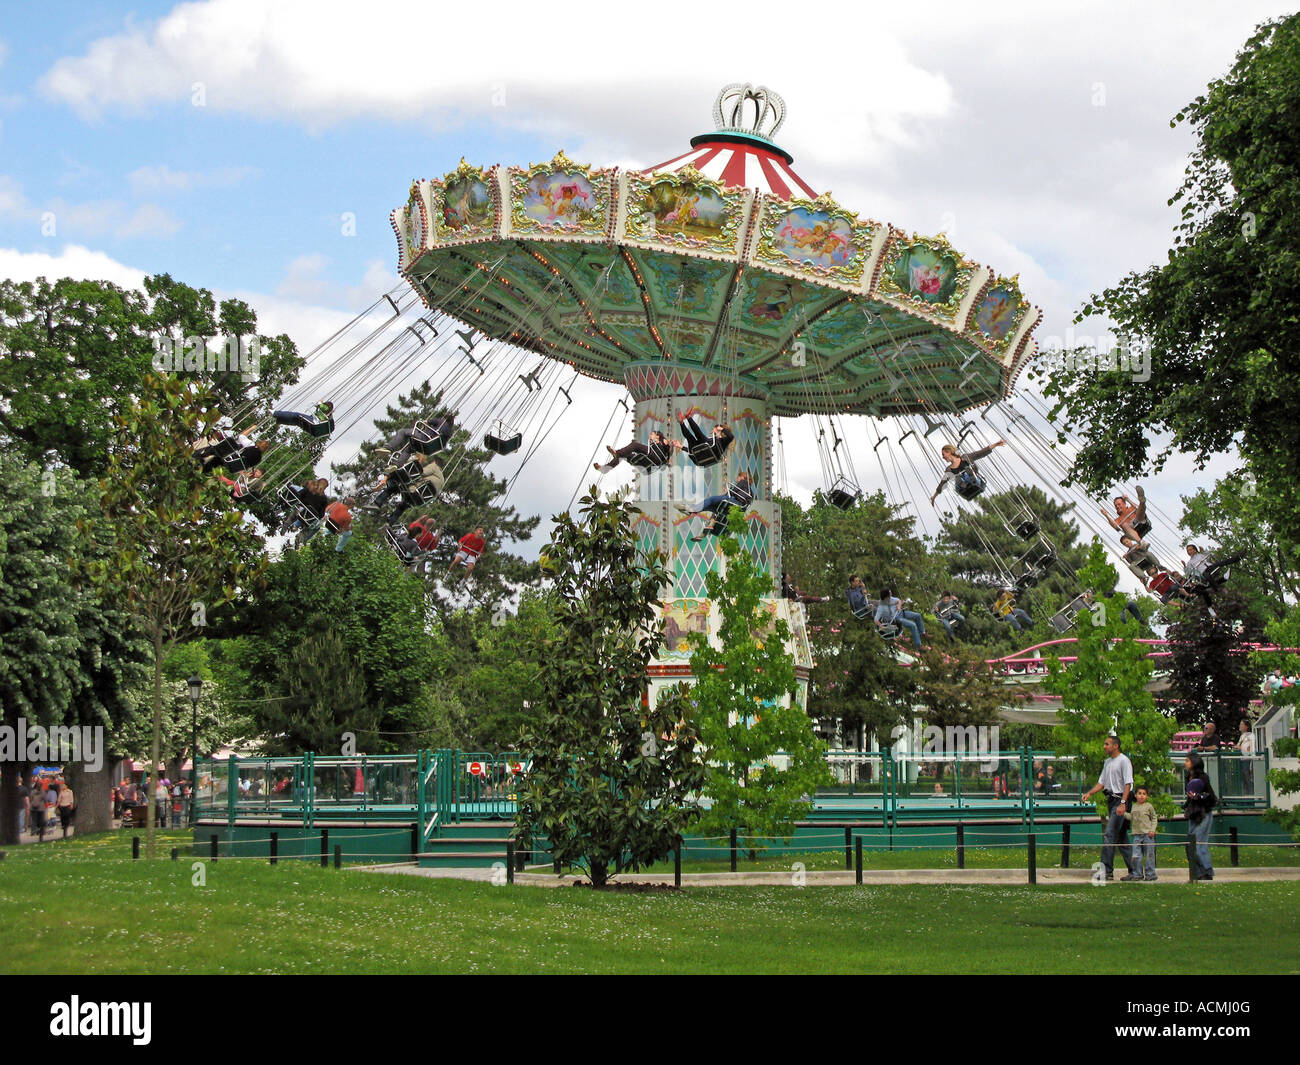 roundabout in le jardin d acclimatation paris france stock ForJardin D Acclimatation